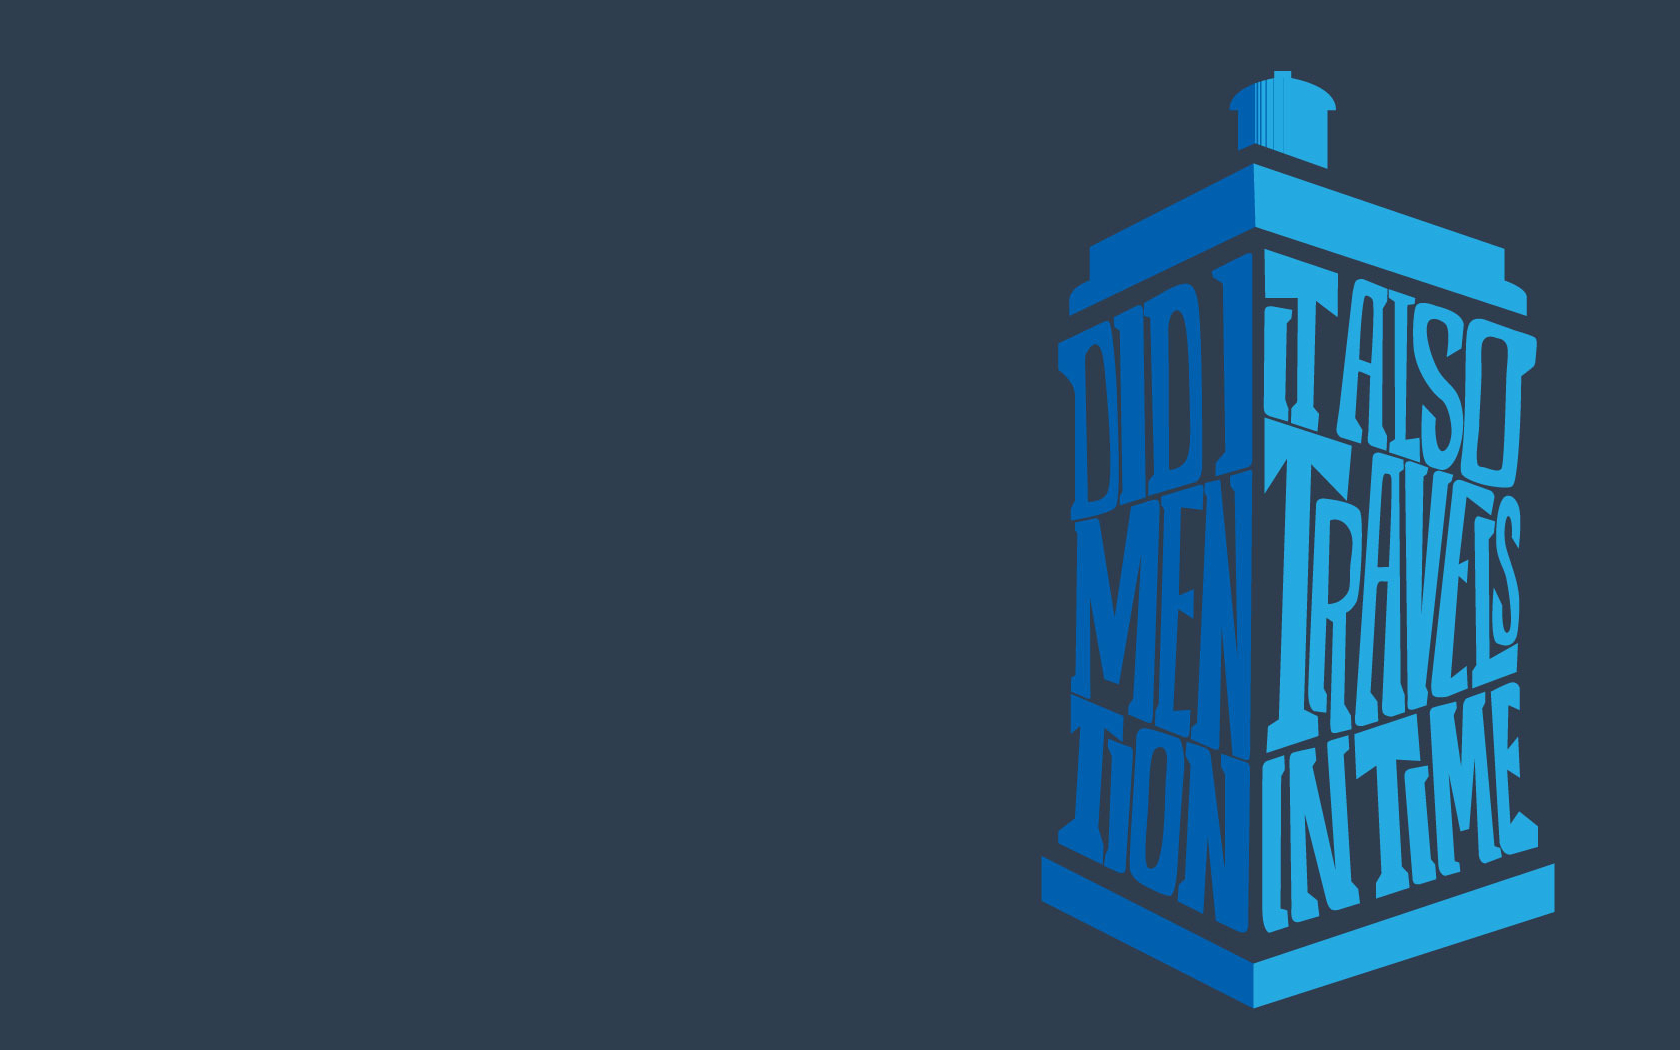 City tardis Typography time HD Wallpaper